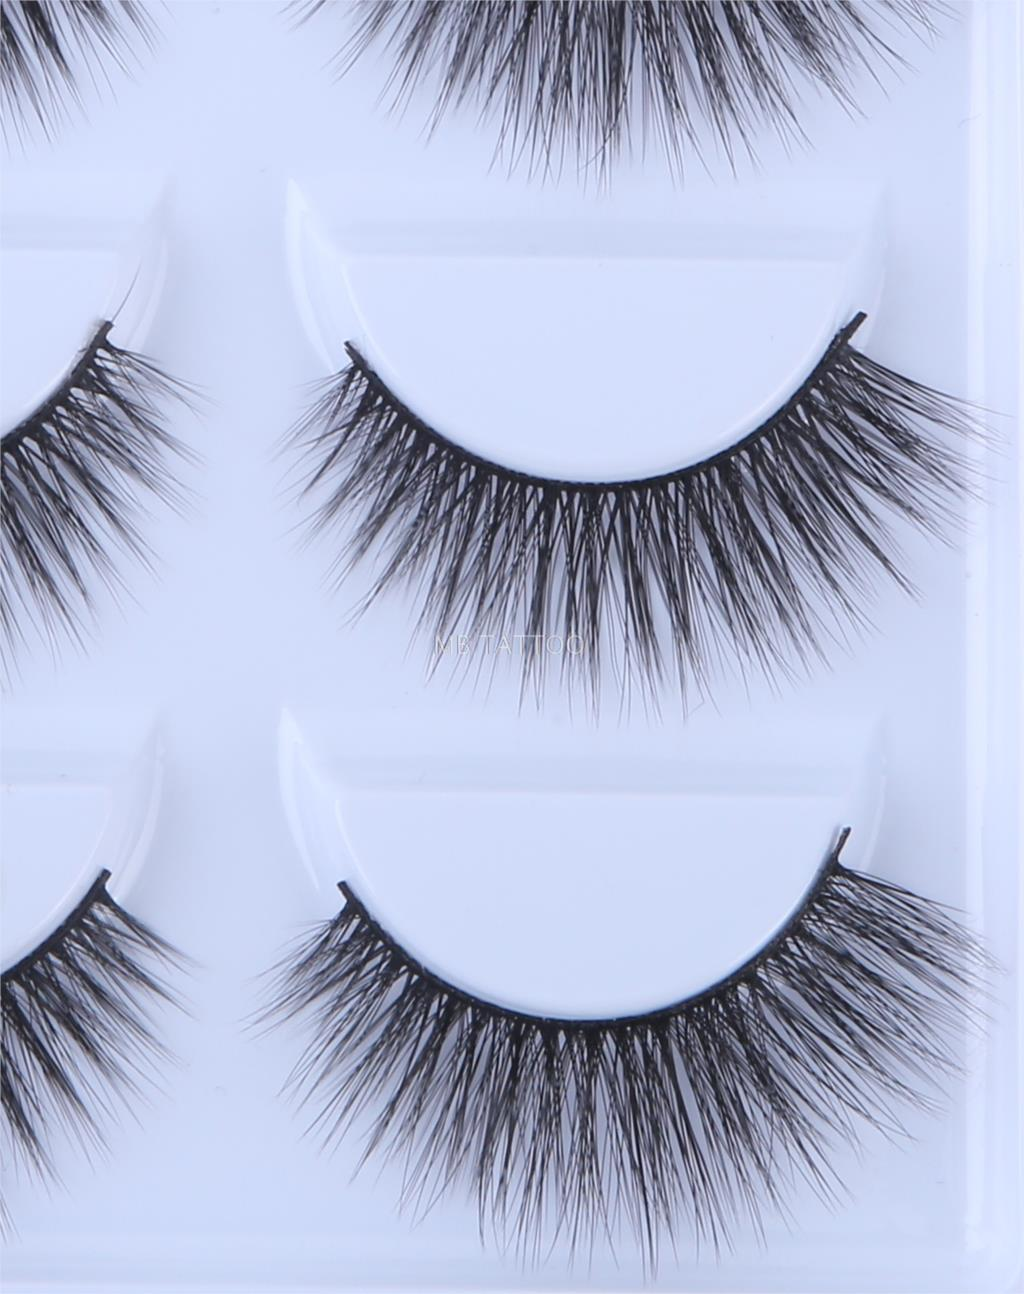 HTB1KgUQQ7voK1RjSZPfq6xPKFXaC New 3D 5 Pairs Mink Eyelashes extension make up natural Long false eyelashes fake eye Lashes mink Makeup wholesale Lashes